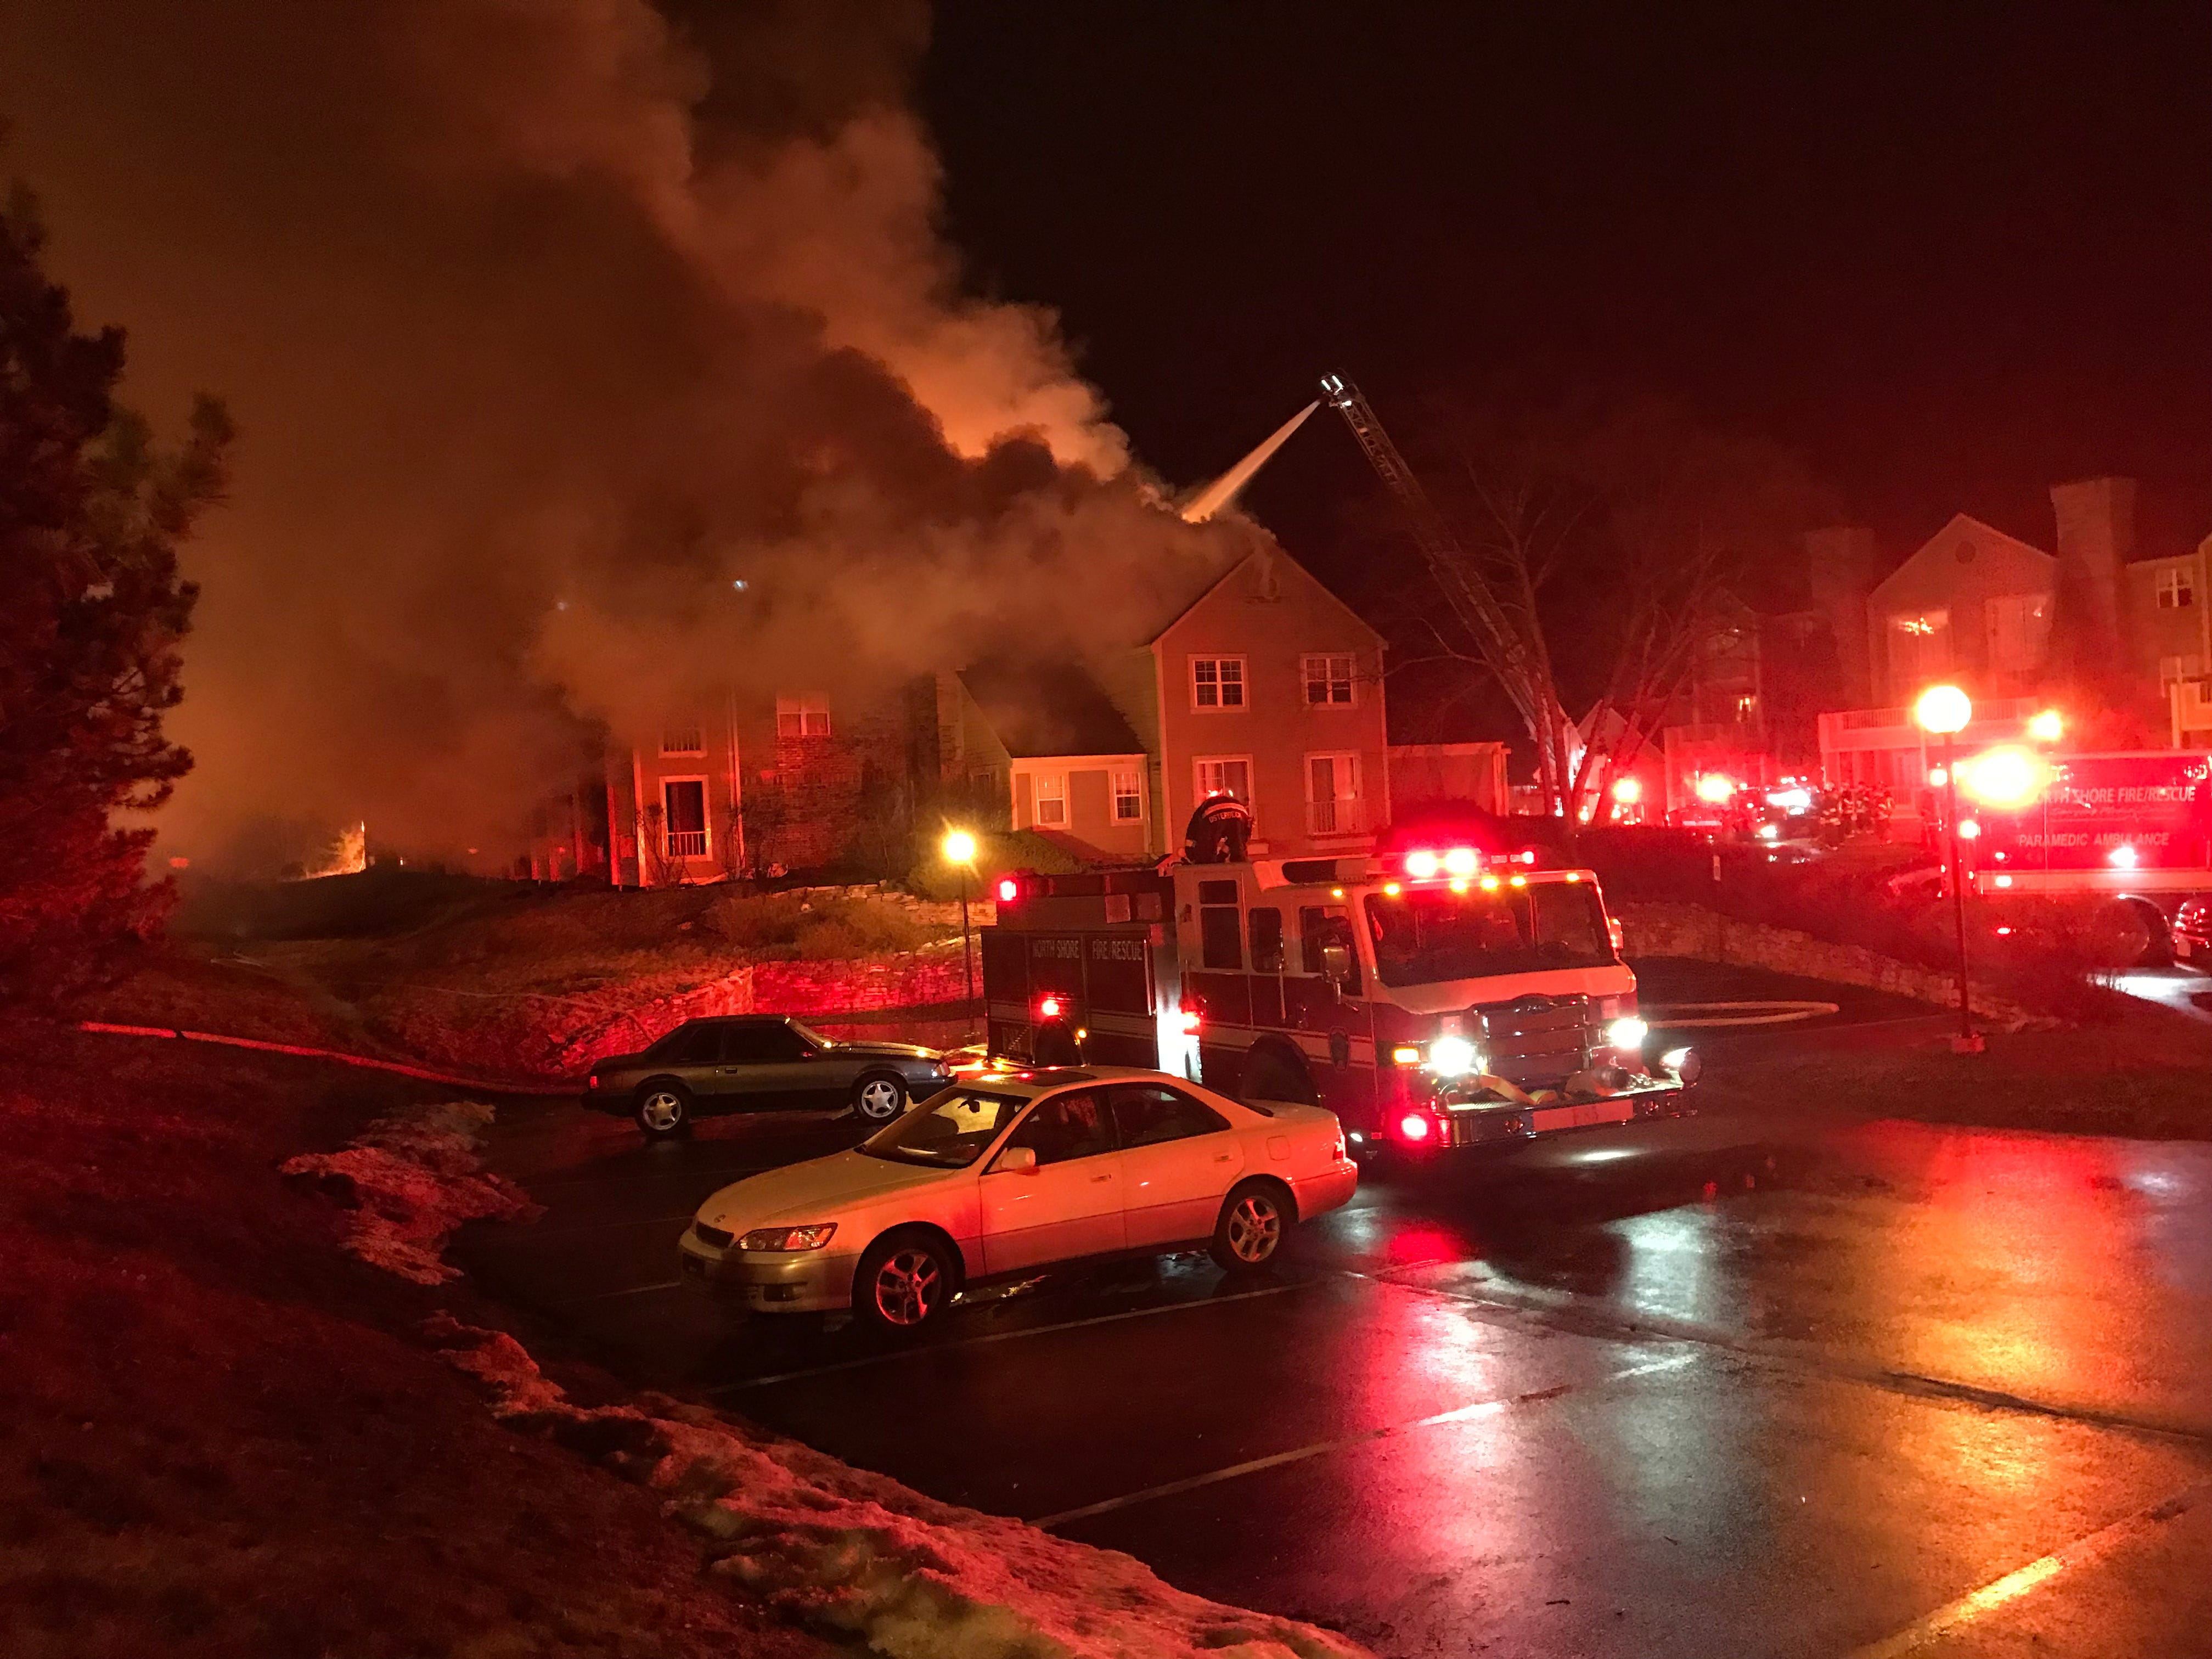 Firefighters douse flames at the White Oaks apartment complex in Bayside.